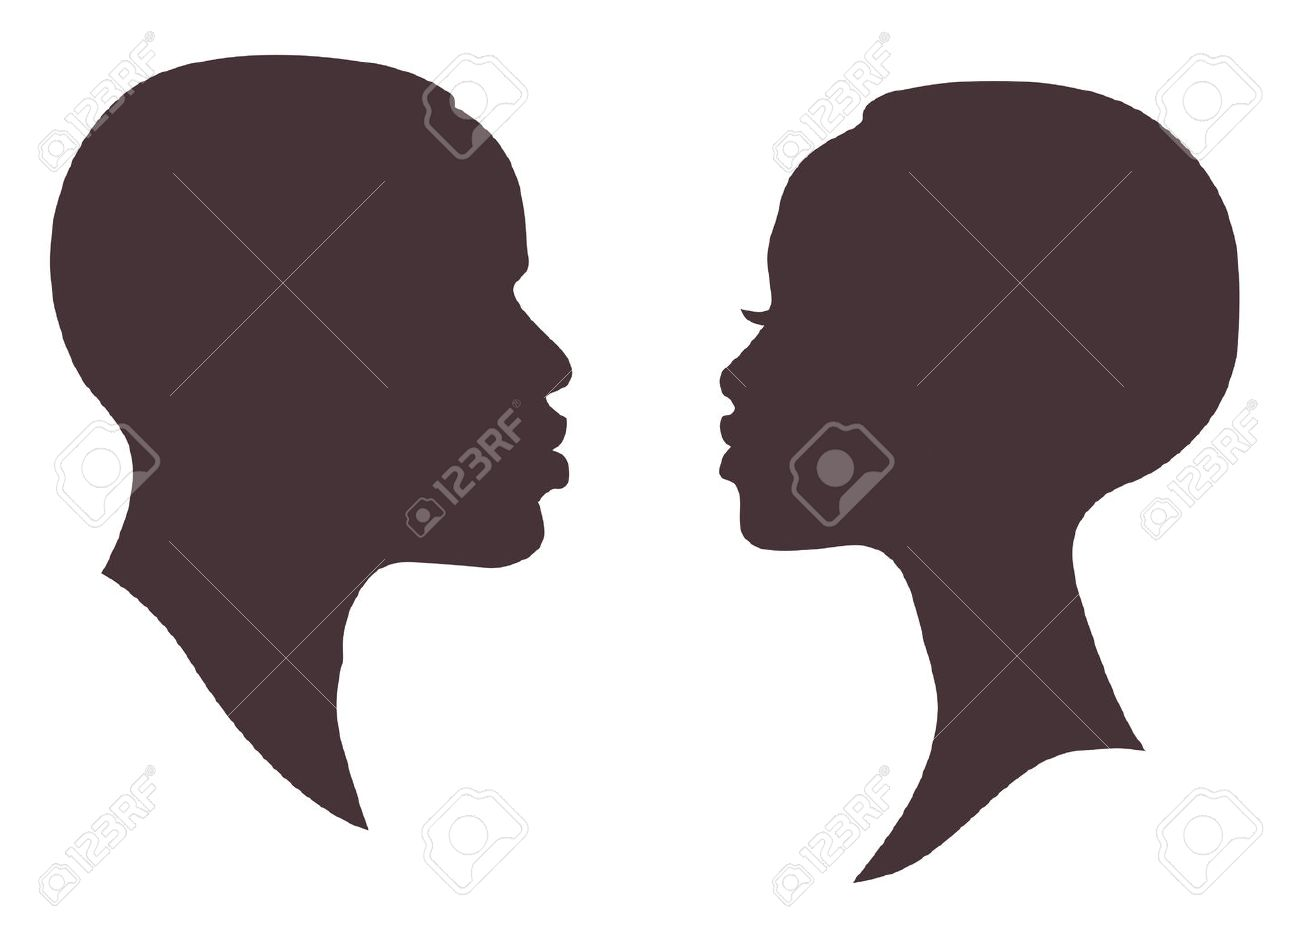 African woman and man face silhouette. Young attractive modern female brutal male profile sign - 64659713